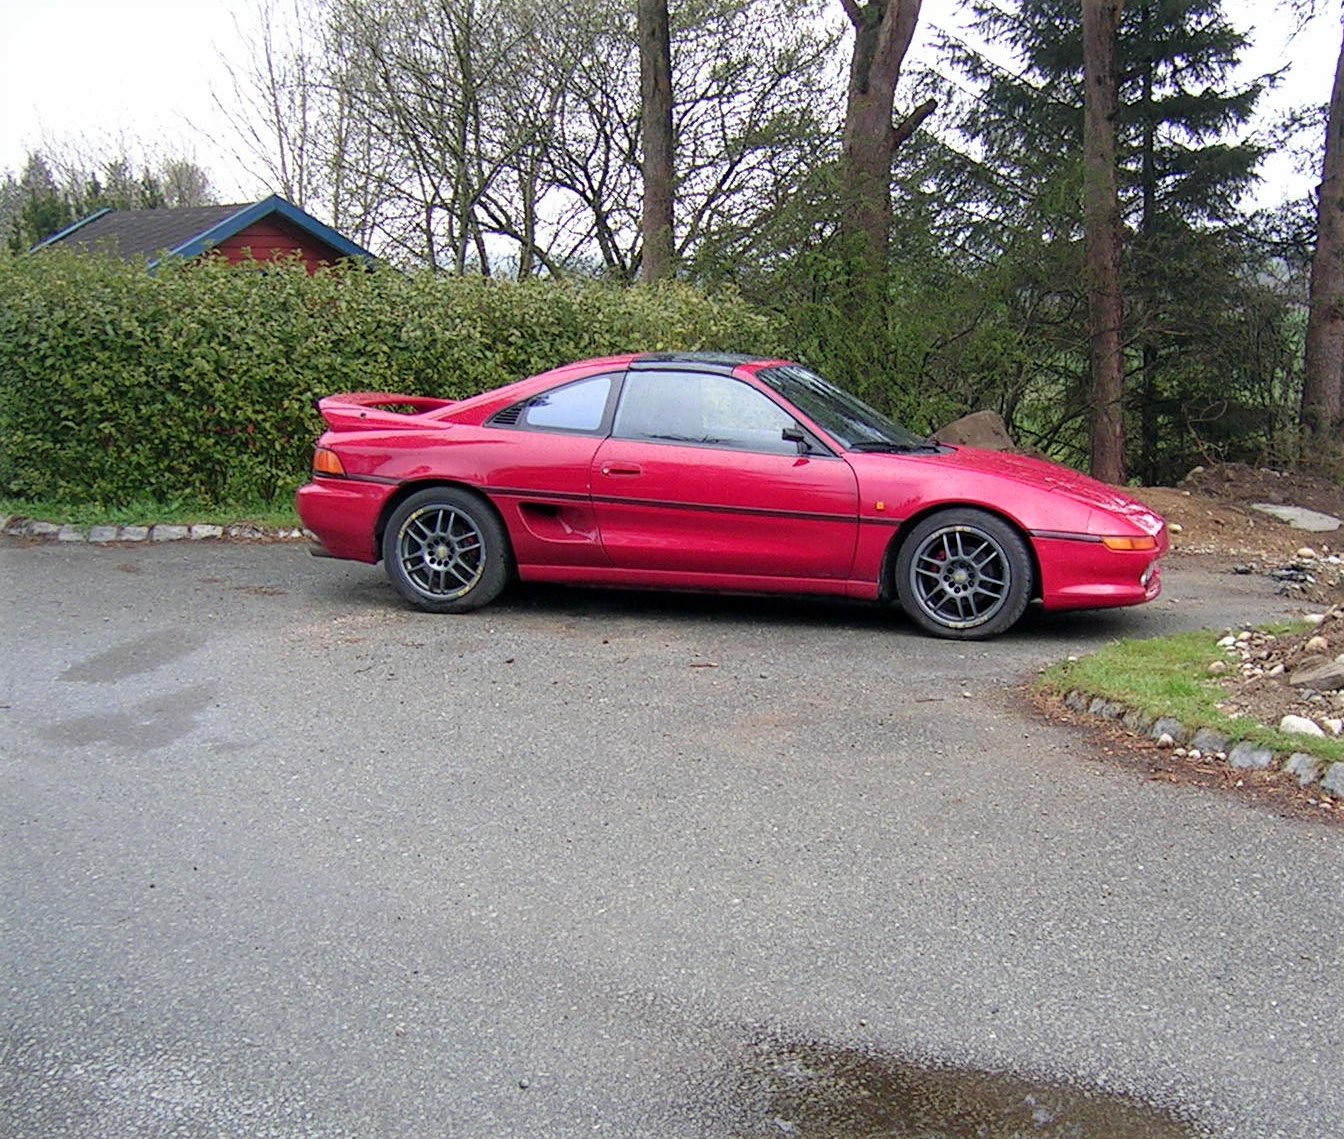 1991 Toyota Mr2 For Sale: 1991 Toyota MR2